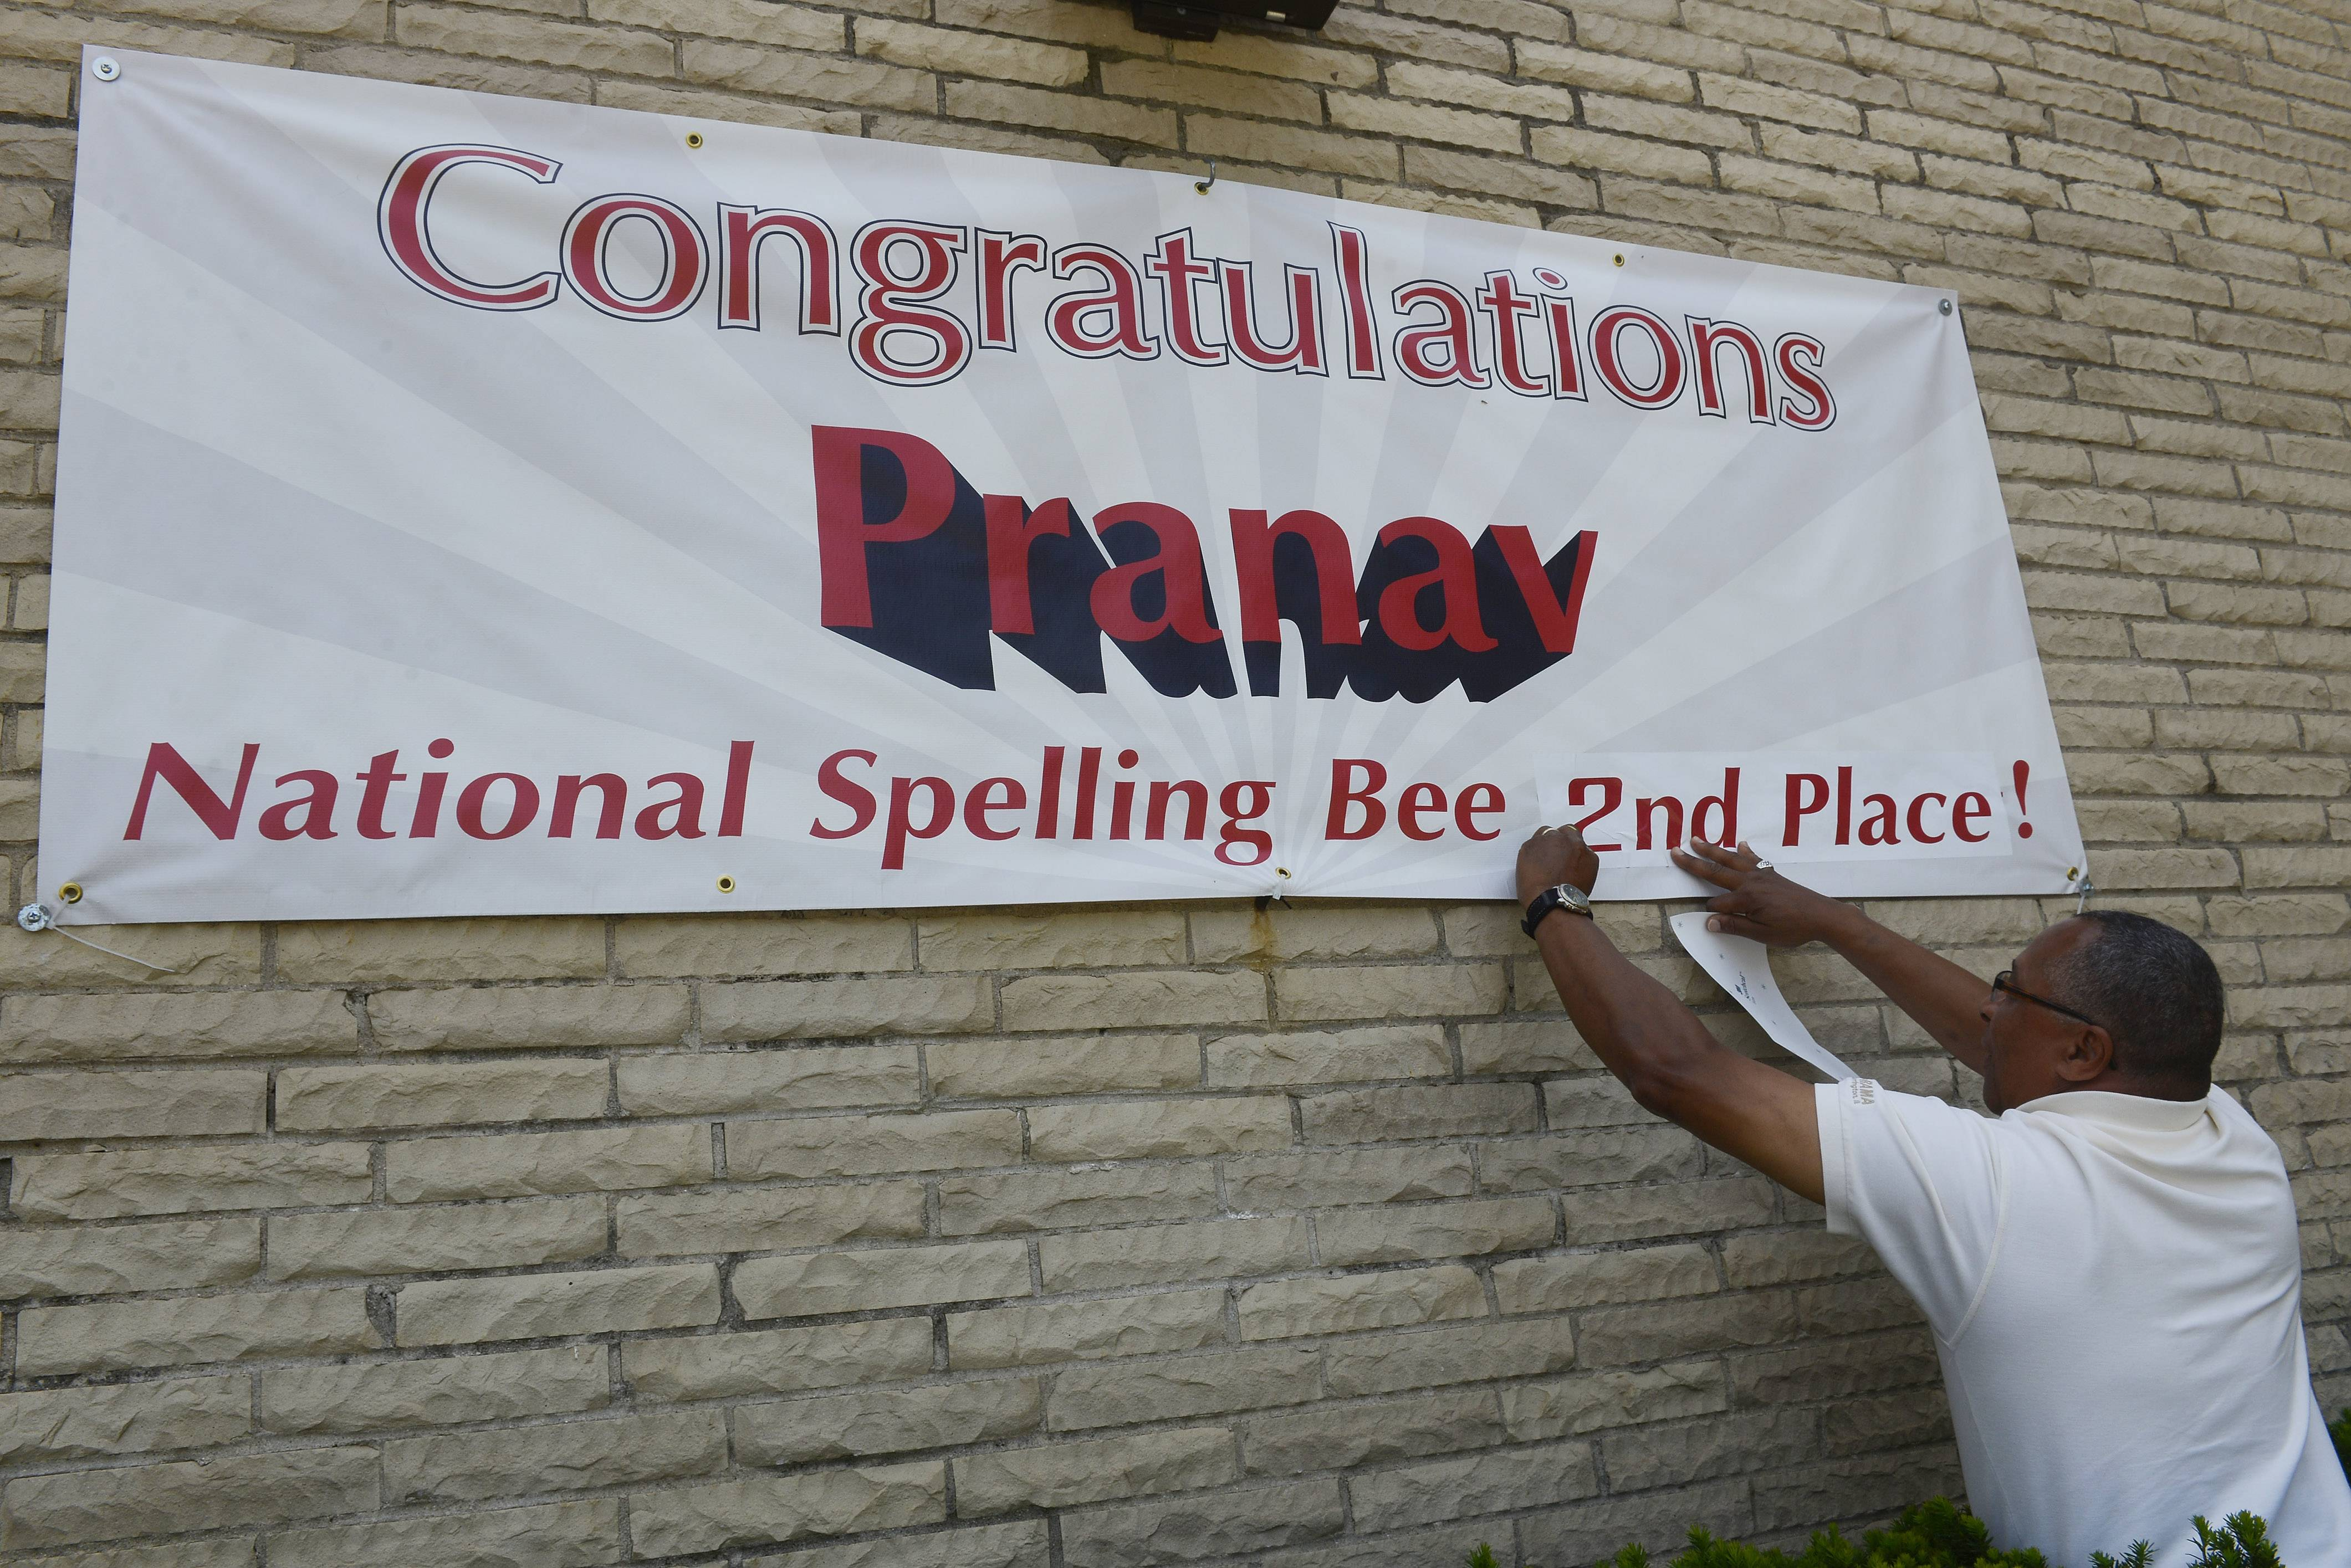 Calm Tower Lakes teen finishes second in National Spelling Bee